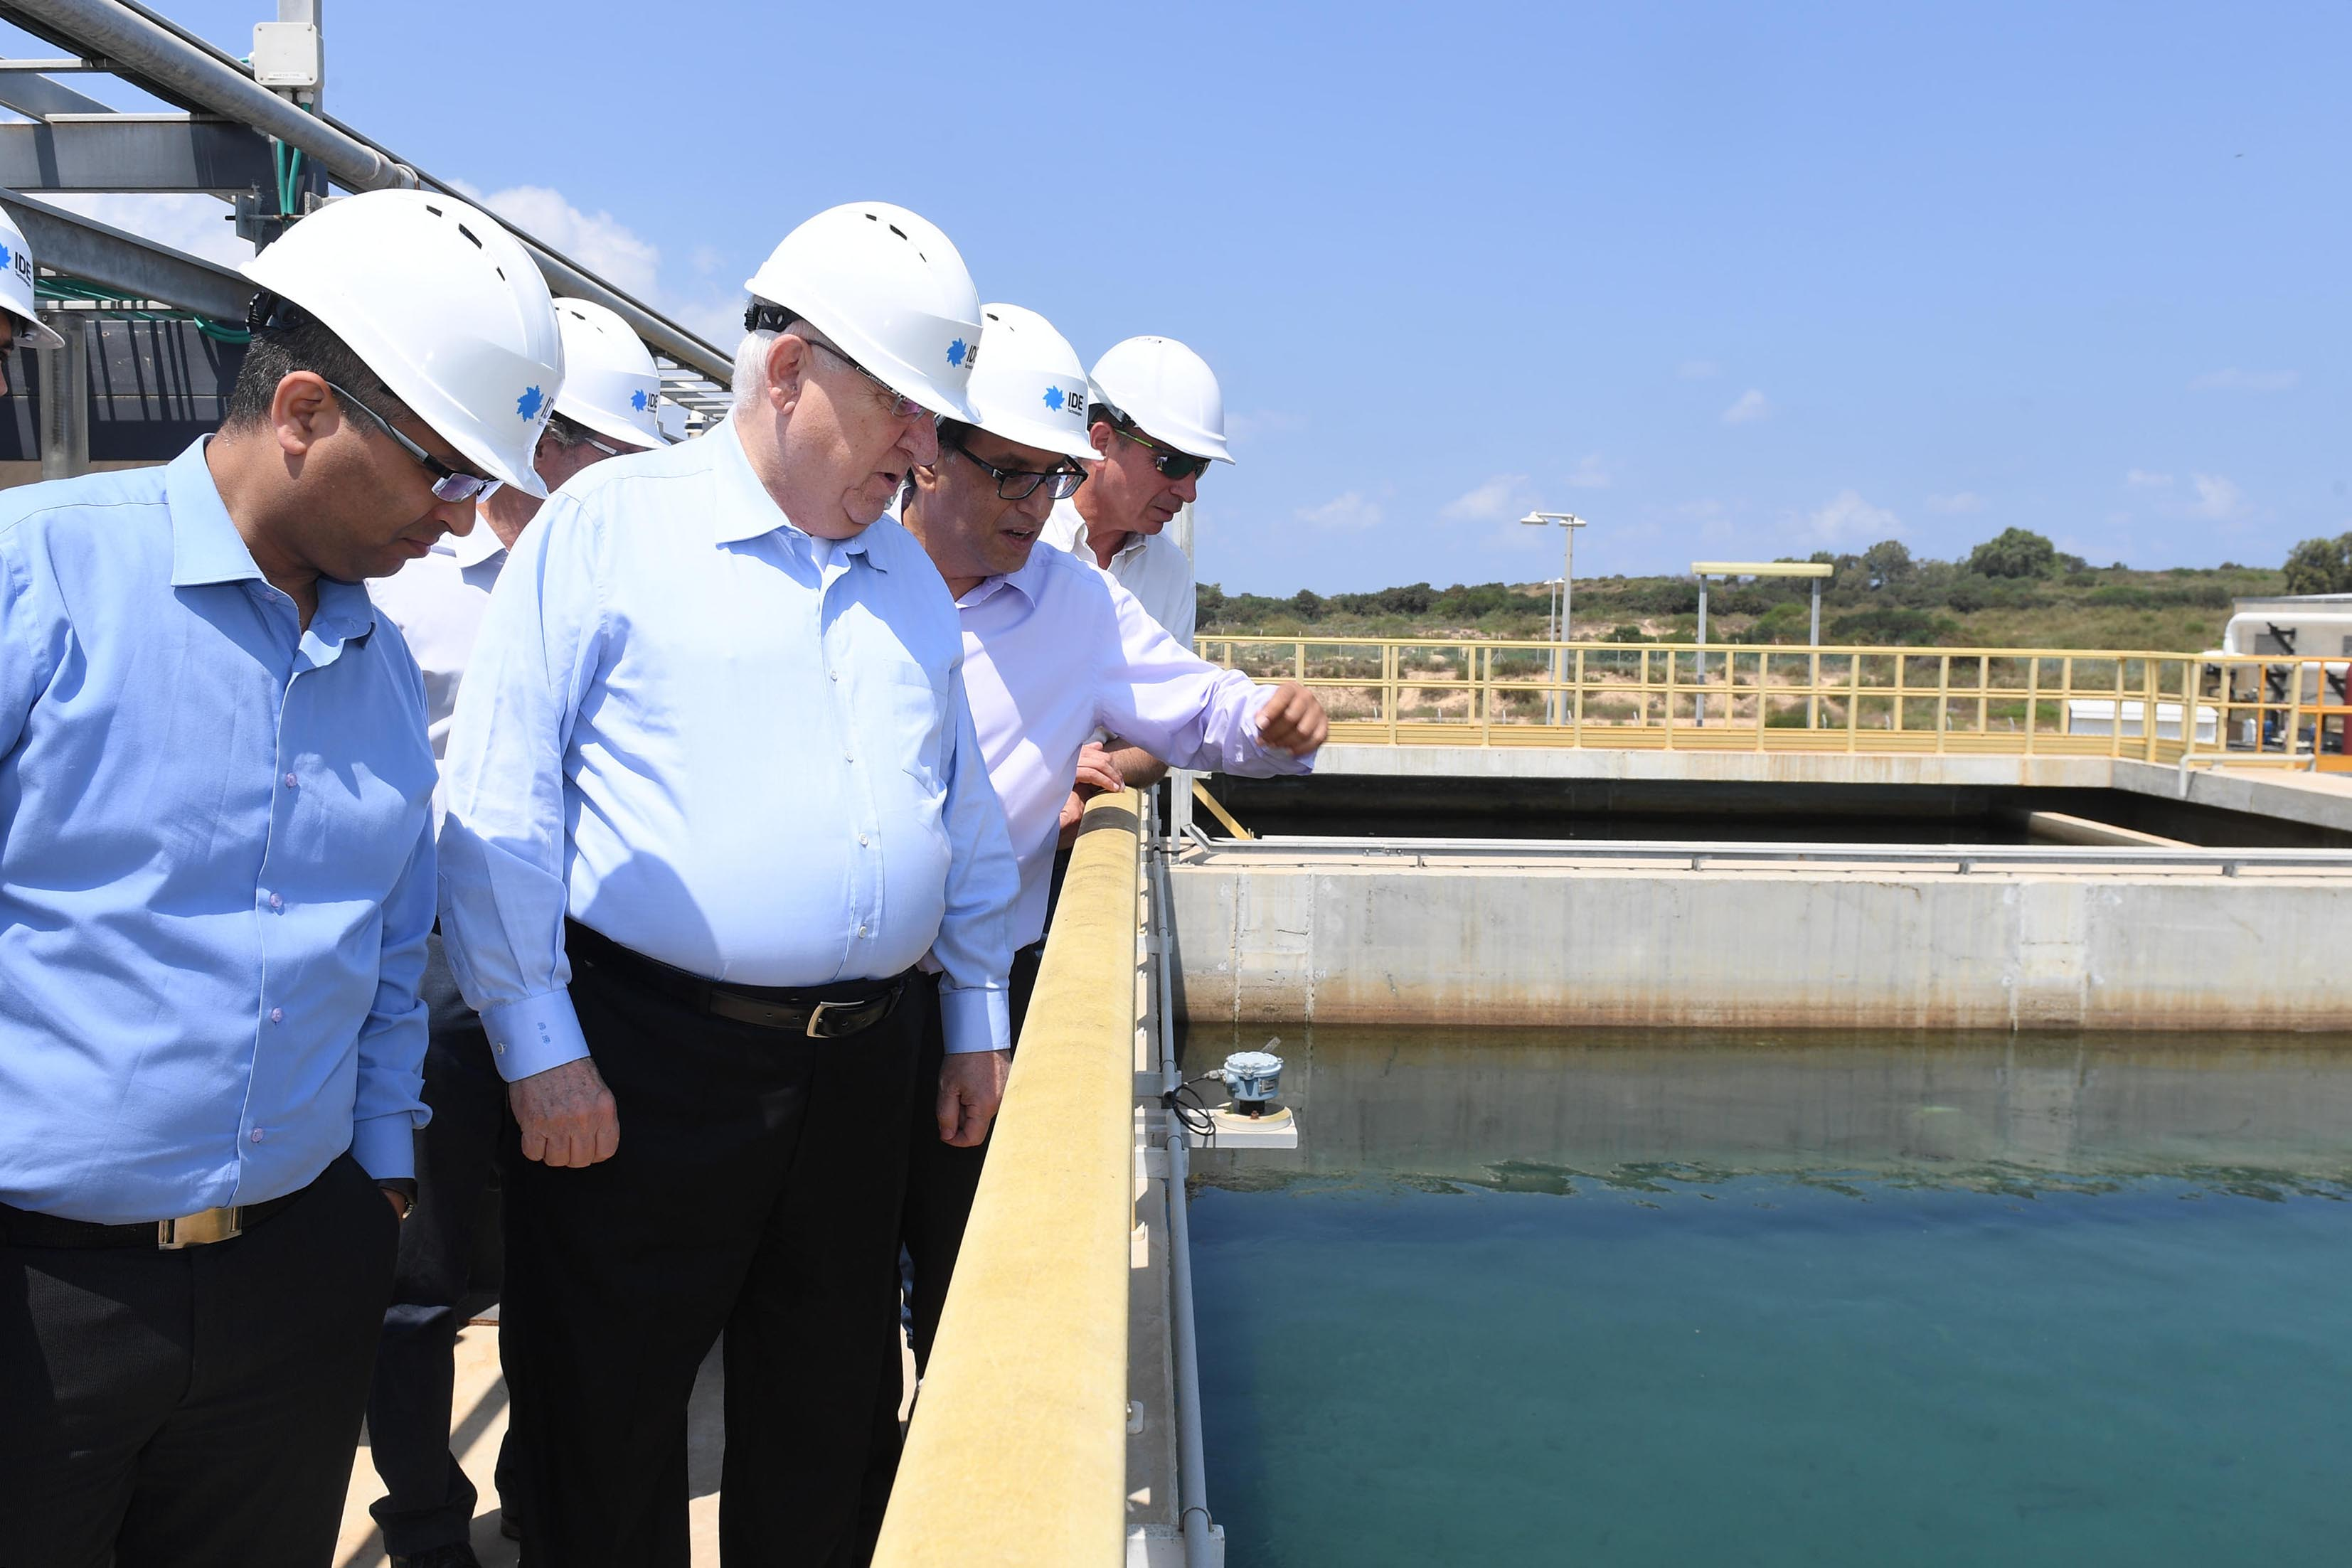 Desalination: Part of the Water Crisis Solution?